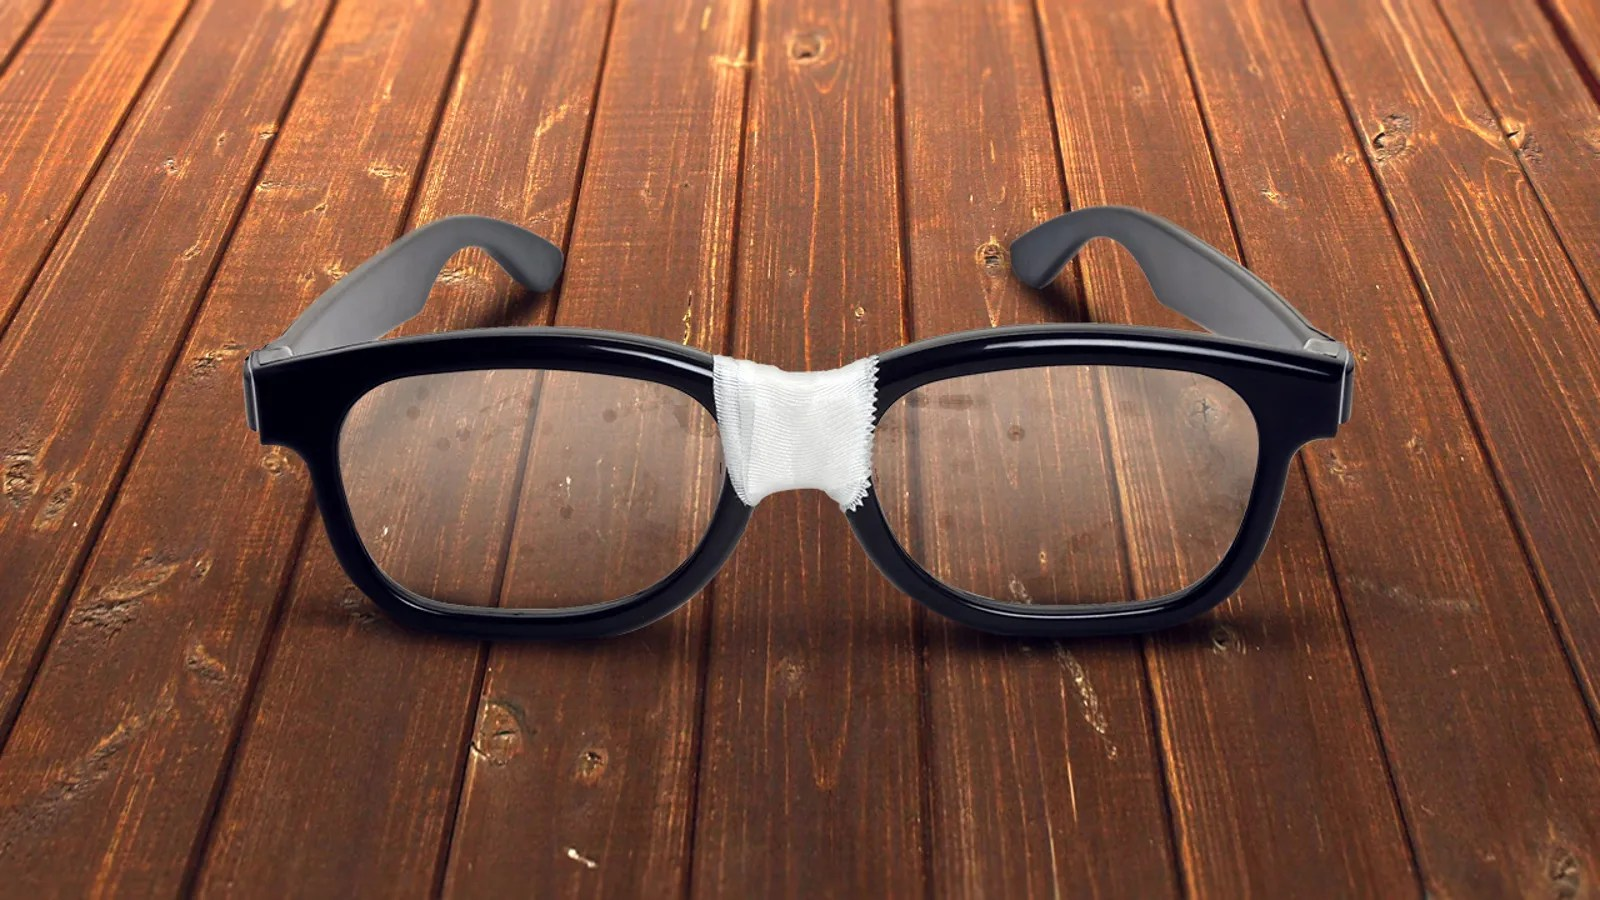 How Can I Revive An Old Beaten Up Pair Of Glasses